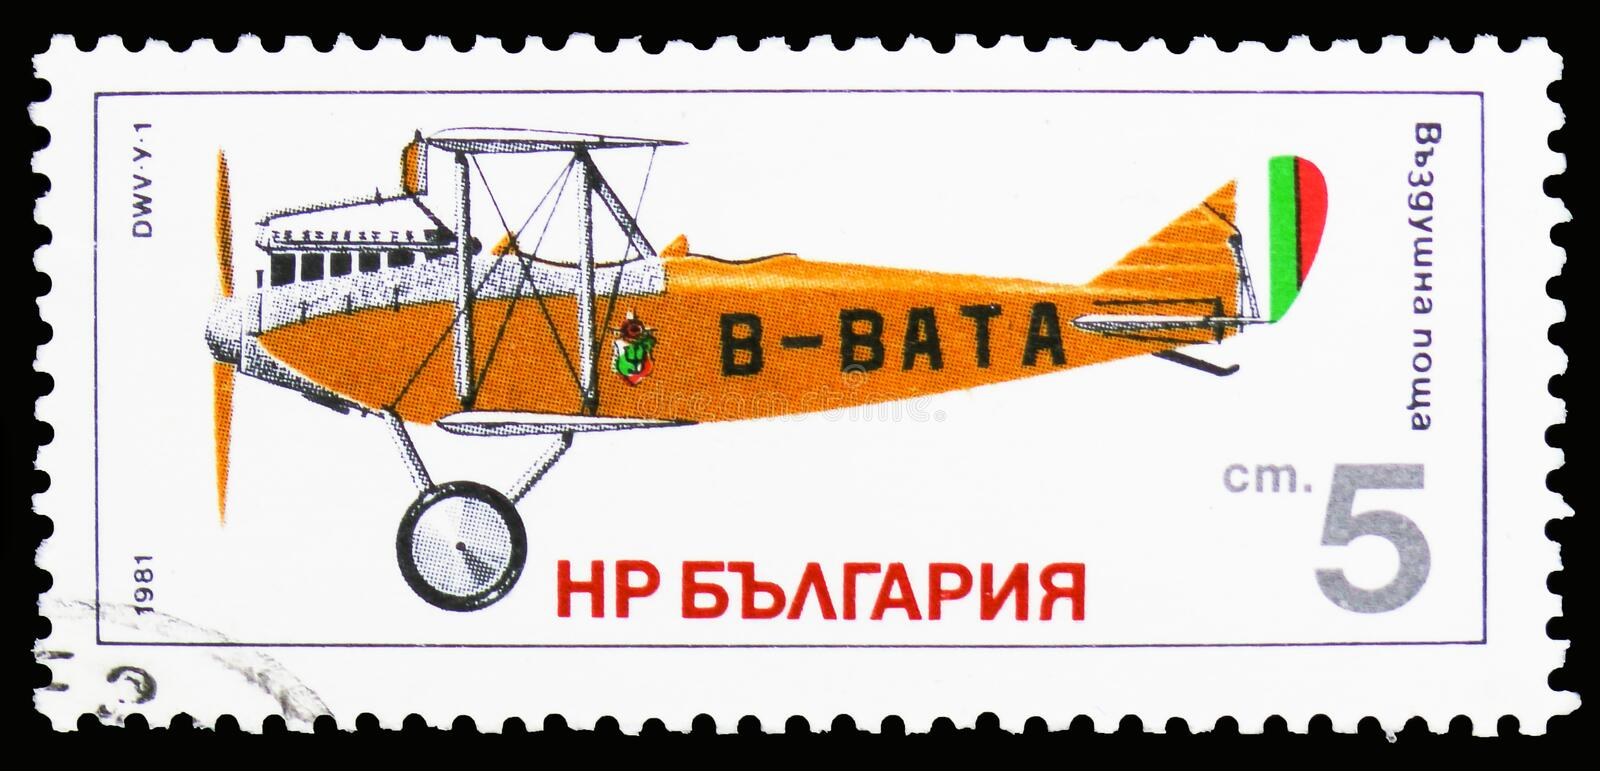 Biplane DWV U-1, History of aircraft serie, circa 1981. MOSCOW, RUSSIA - OCTOBER 6, 2018: A stamp printed in Bulgaria shows Biplane DWV U-1, History of aircraft stock photos